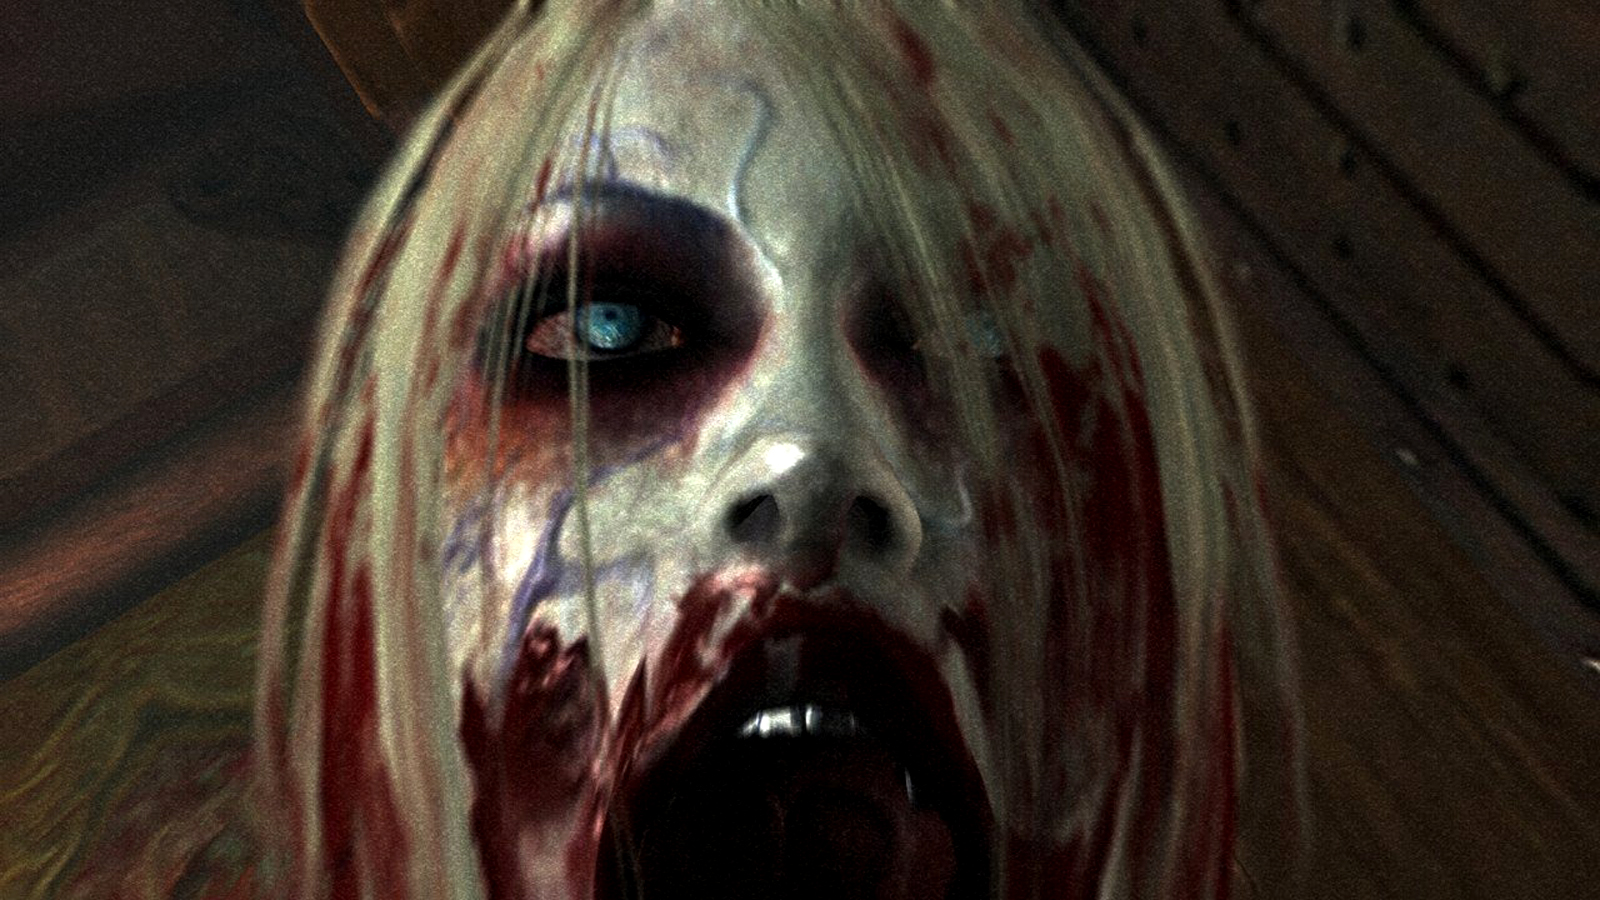 http://3.bp.blogspot.com/-jLwlXuA5JSg/Tm-ubdH-m-I/AAAAAAAAC_Q/znUbk10nElM/s1600/Rise_of_Nightmares_HD_Zombie_Woman_Wallpaper_GameWallBase.Com.jpg